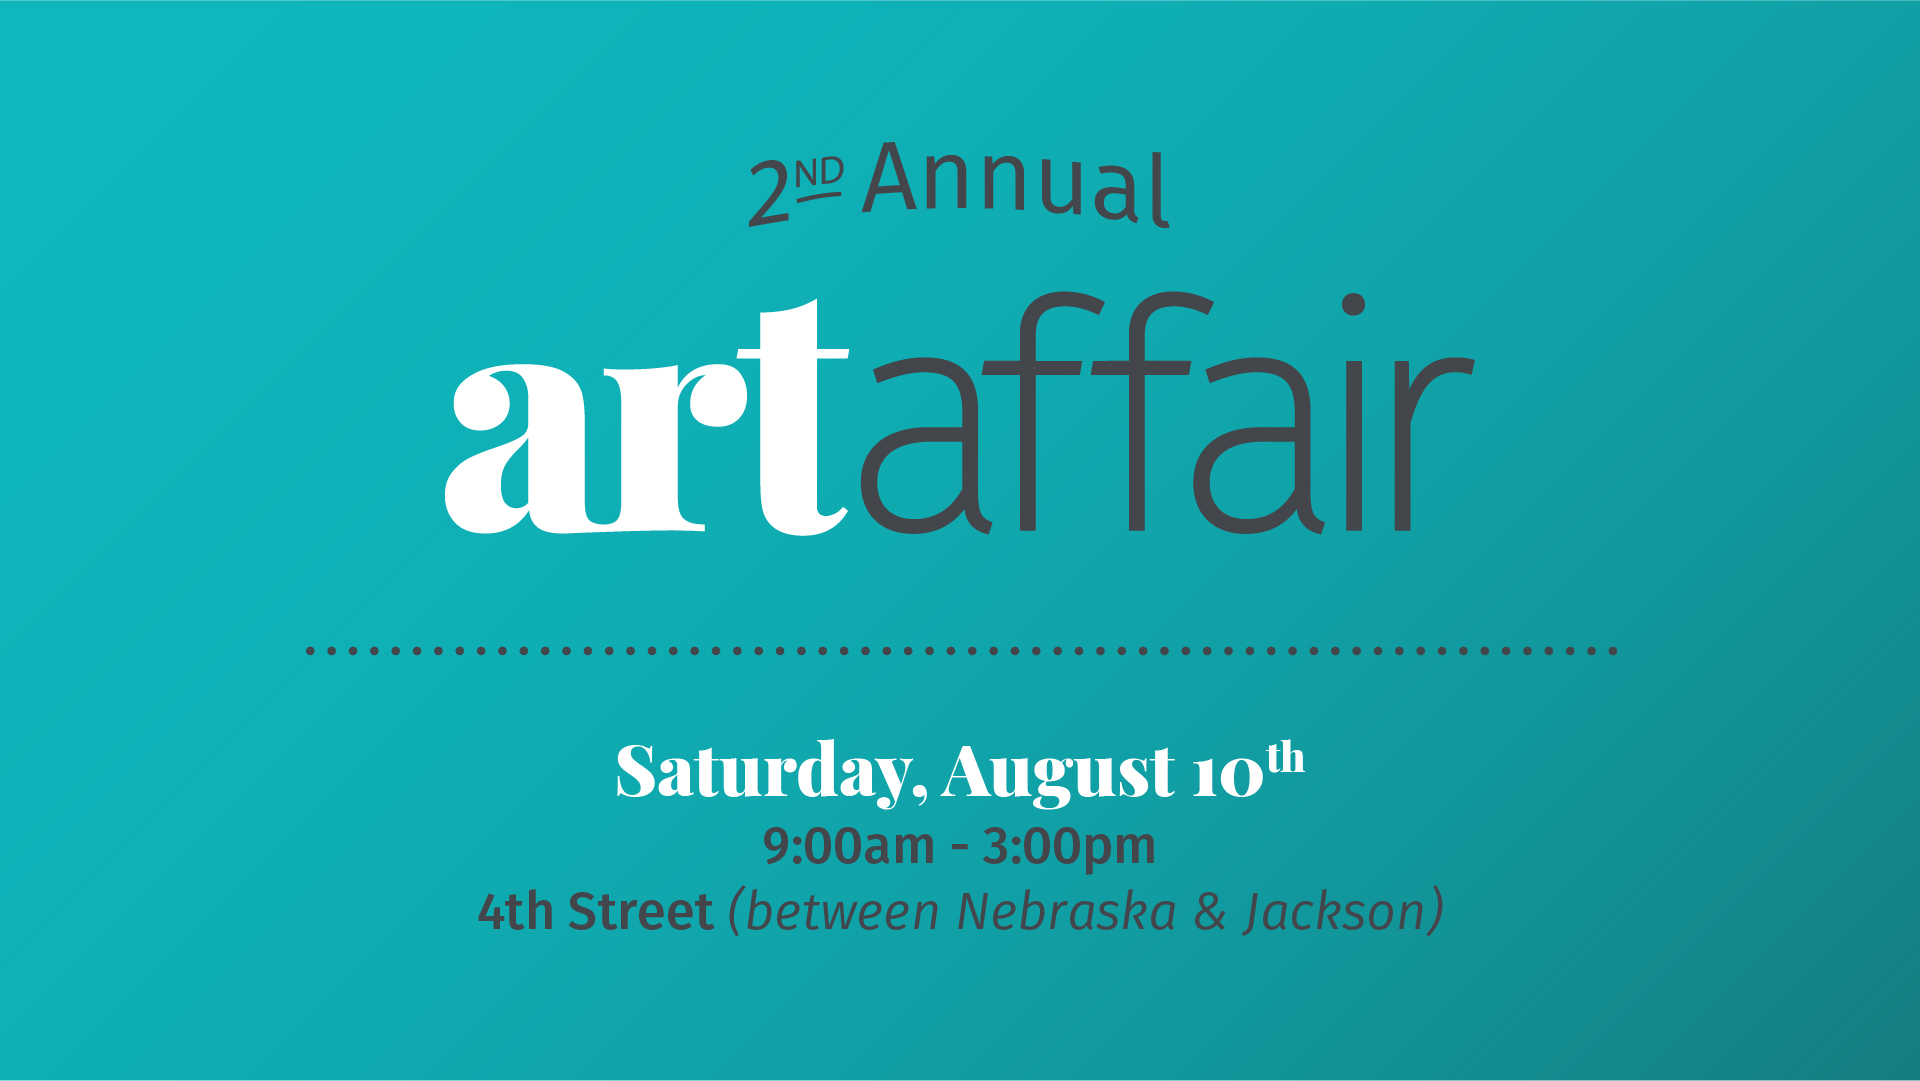 2nd Annual Art Affair